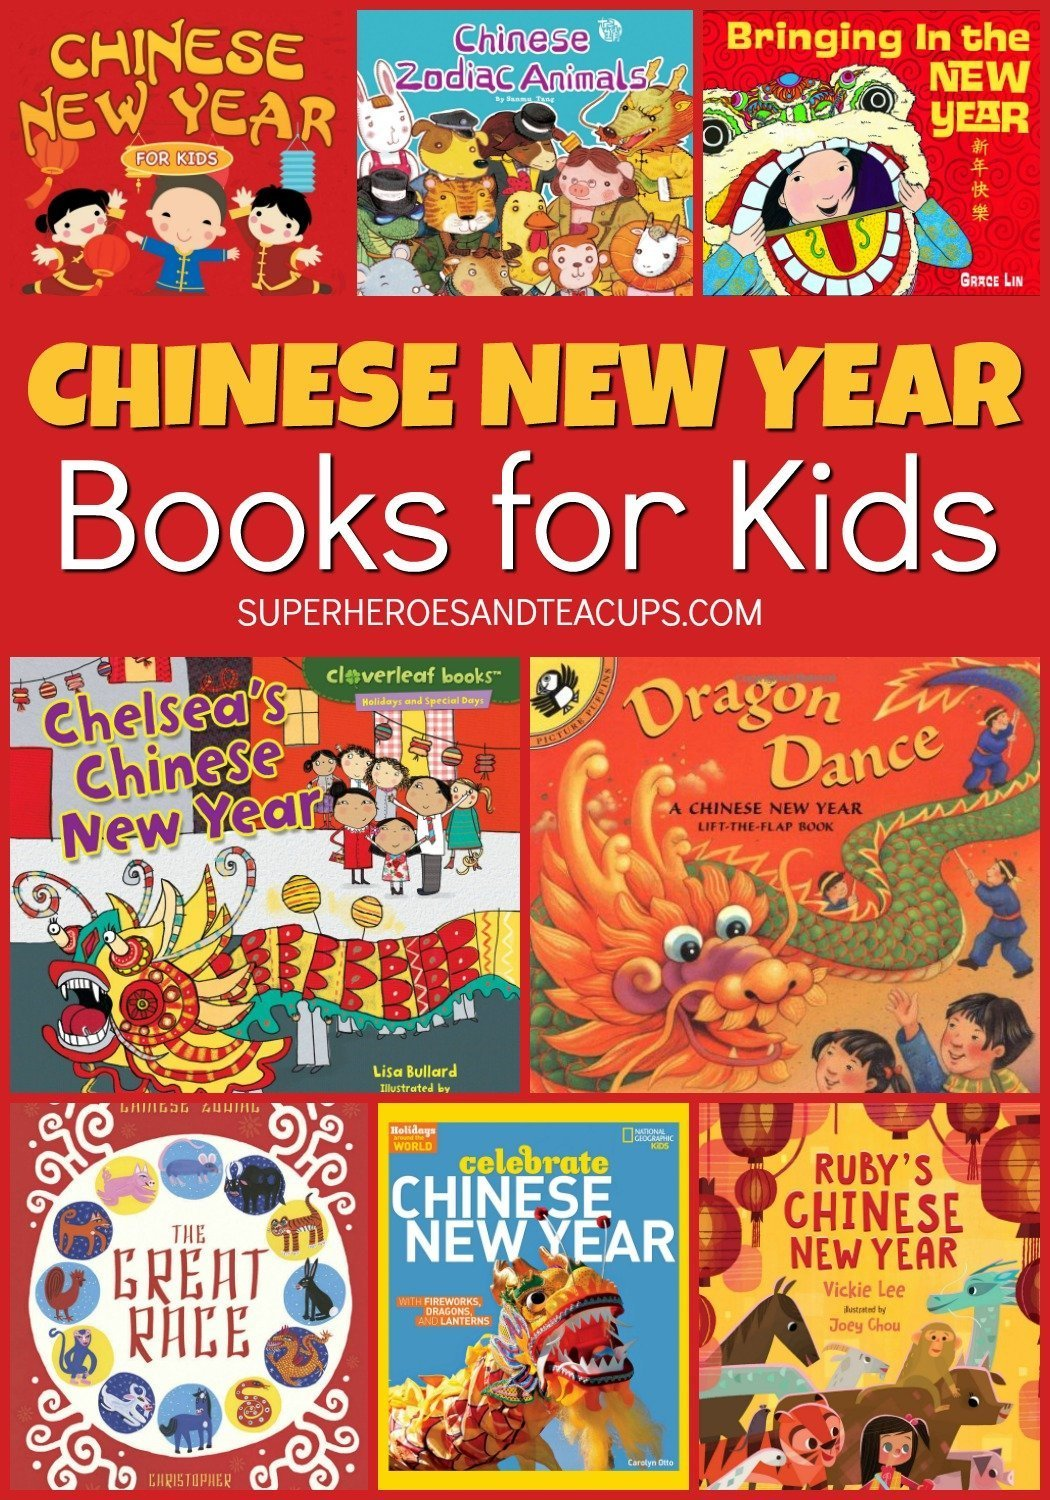 Fun Chinese New Year books for kids to help even the youngest readers learn about the holiday. Picture books and non-fiction books included. #booksforkids #ChineseNewYear #ChineseNewYearBooks #superheroesandteacups